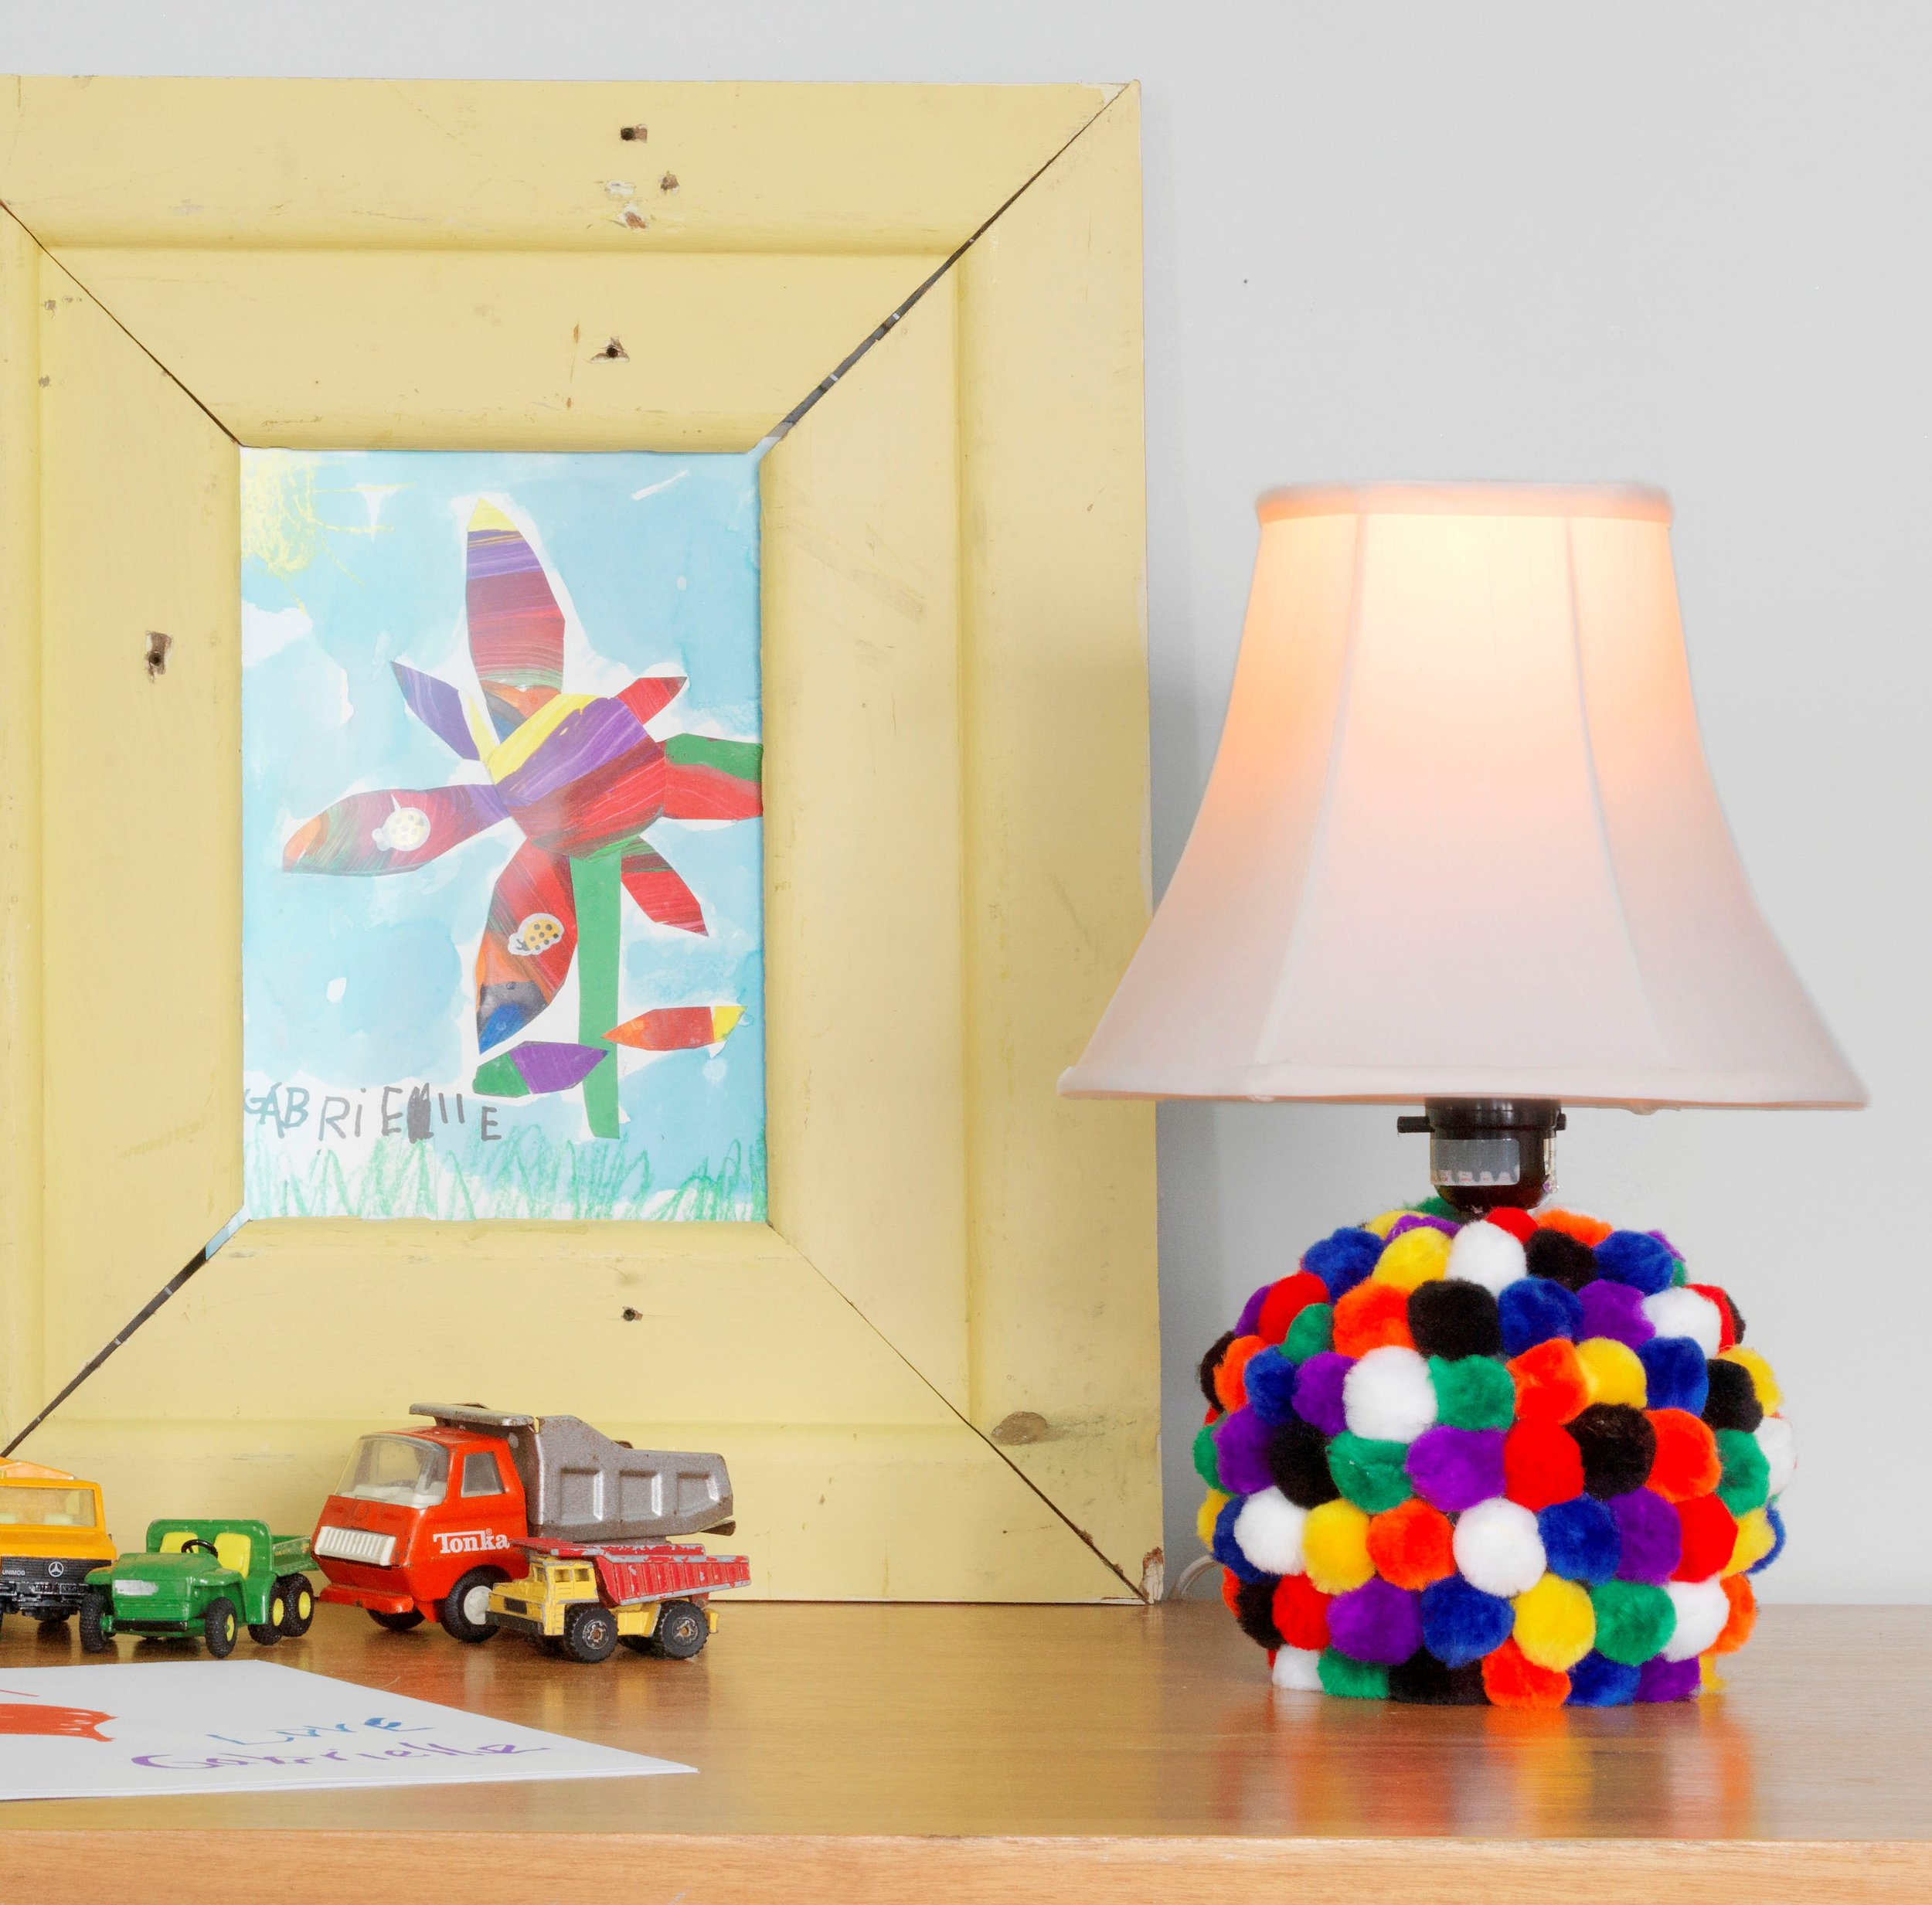 Mix a second hand store lamp with some colorful pom poms— and voilia! Instant happy lamp for the kids room!